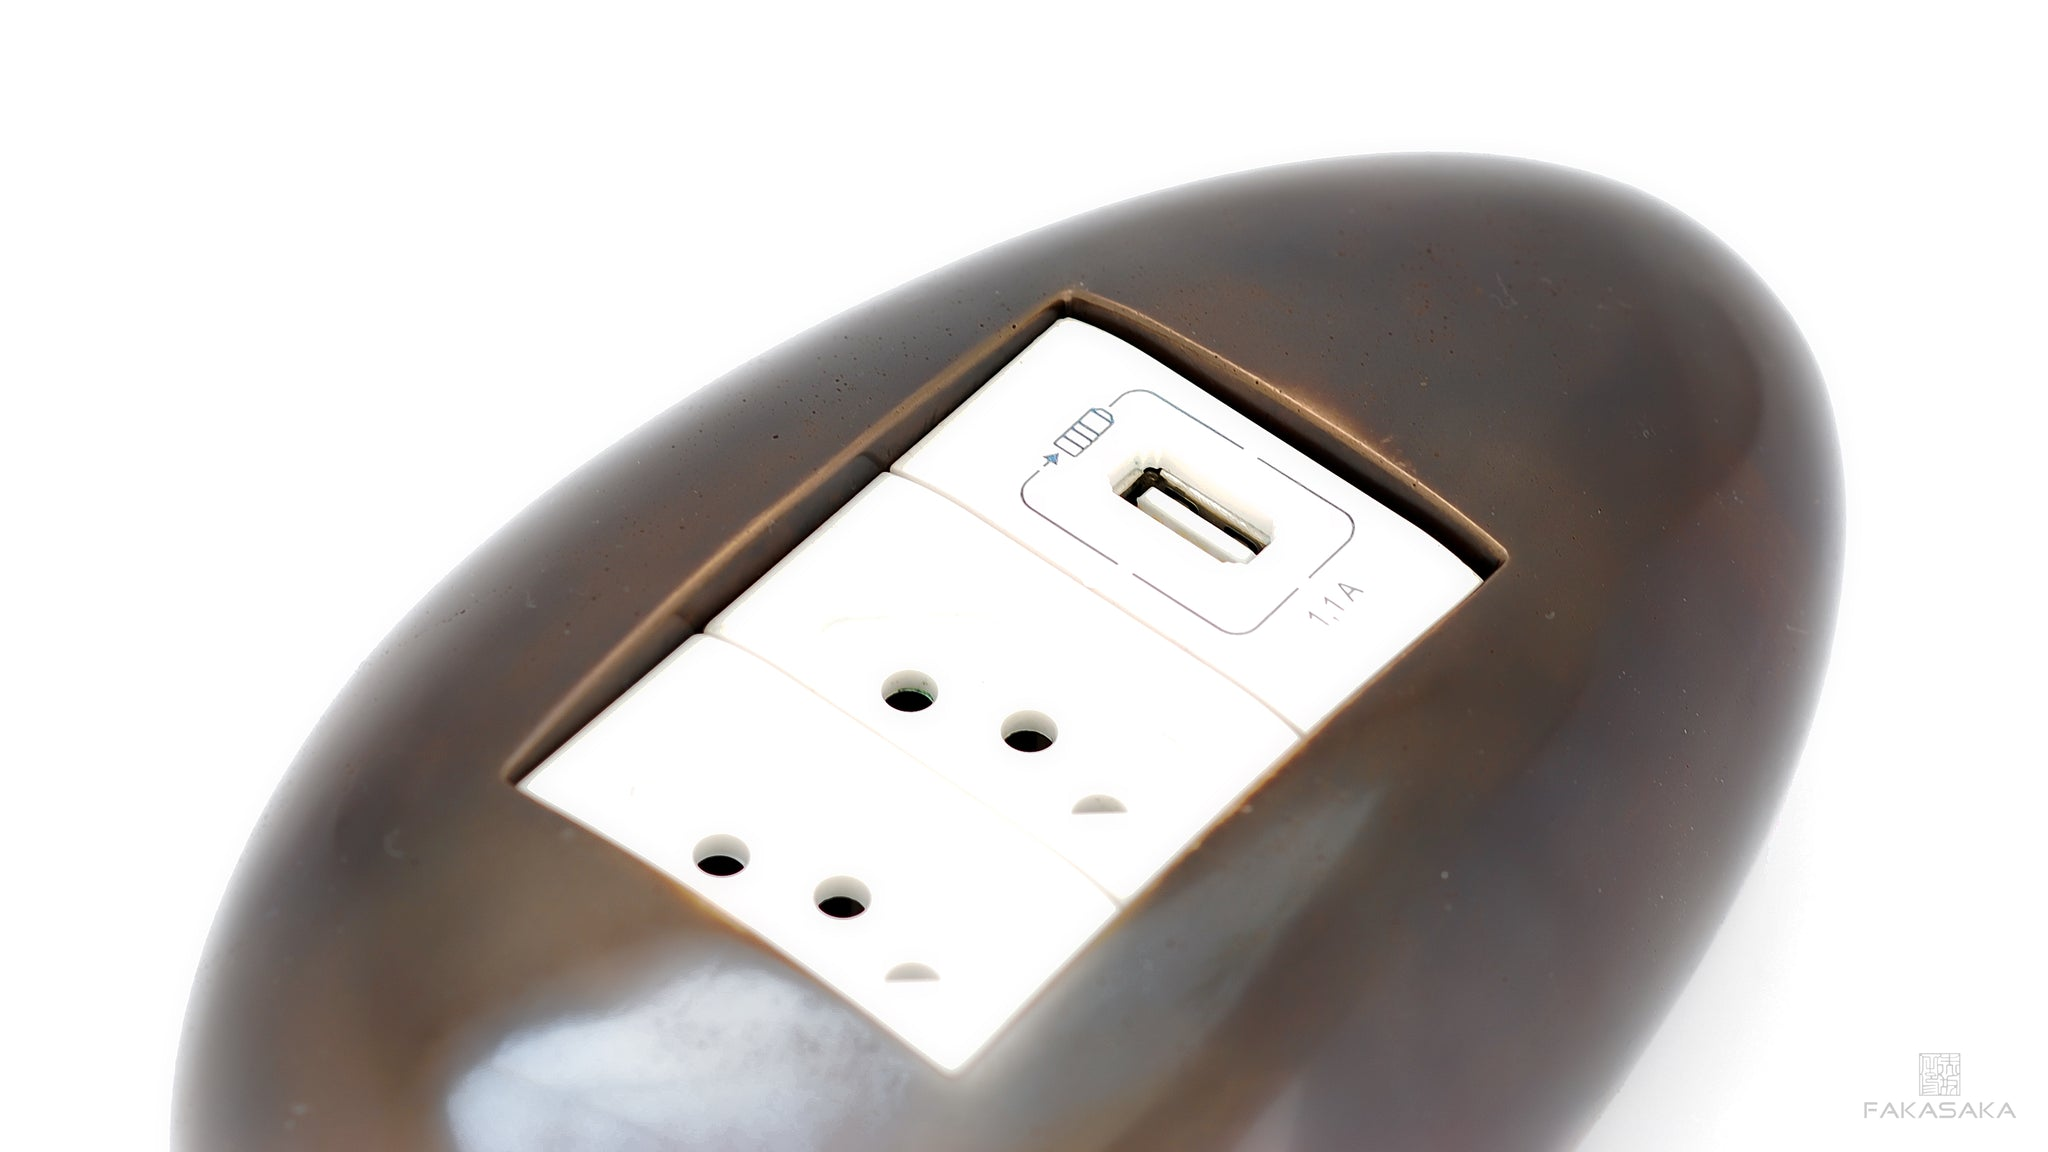 DYLAN ELECTRICAL MODULE<br><br>2 OUTLETS + 1 USB PORT + EXTENSION CORD<br>DARK BRONZE